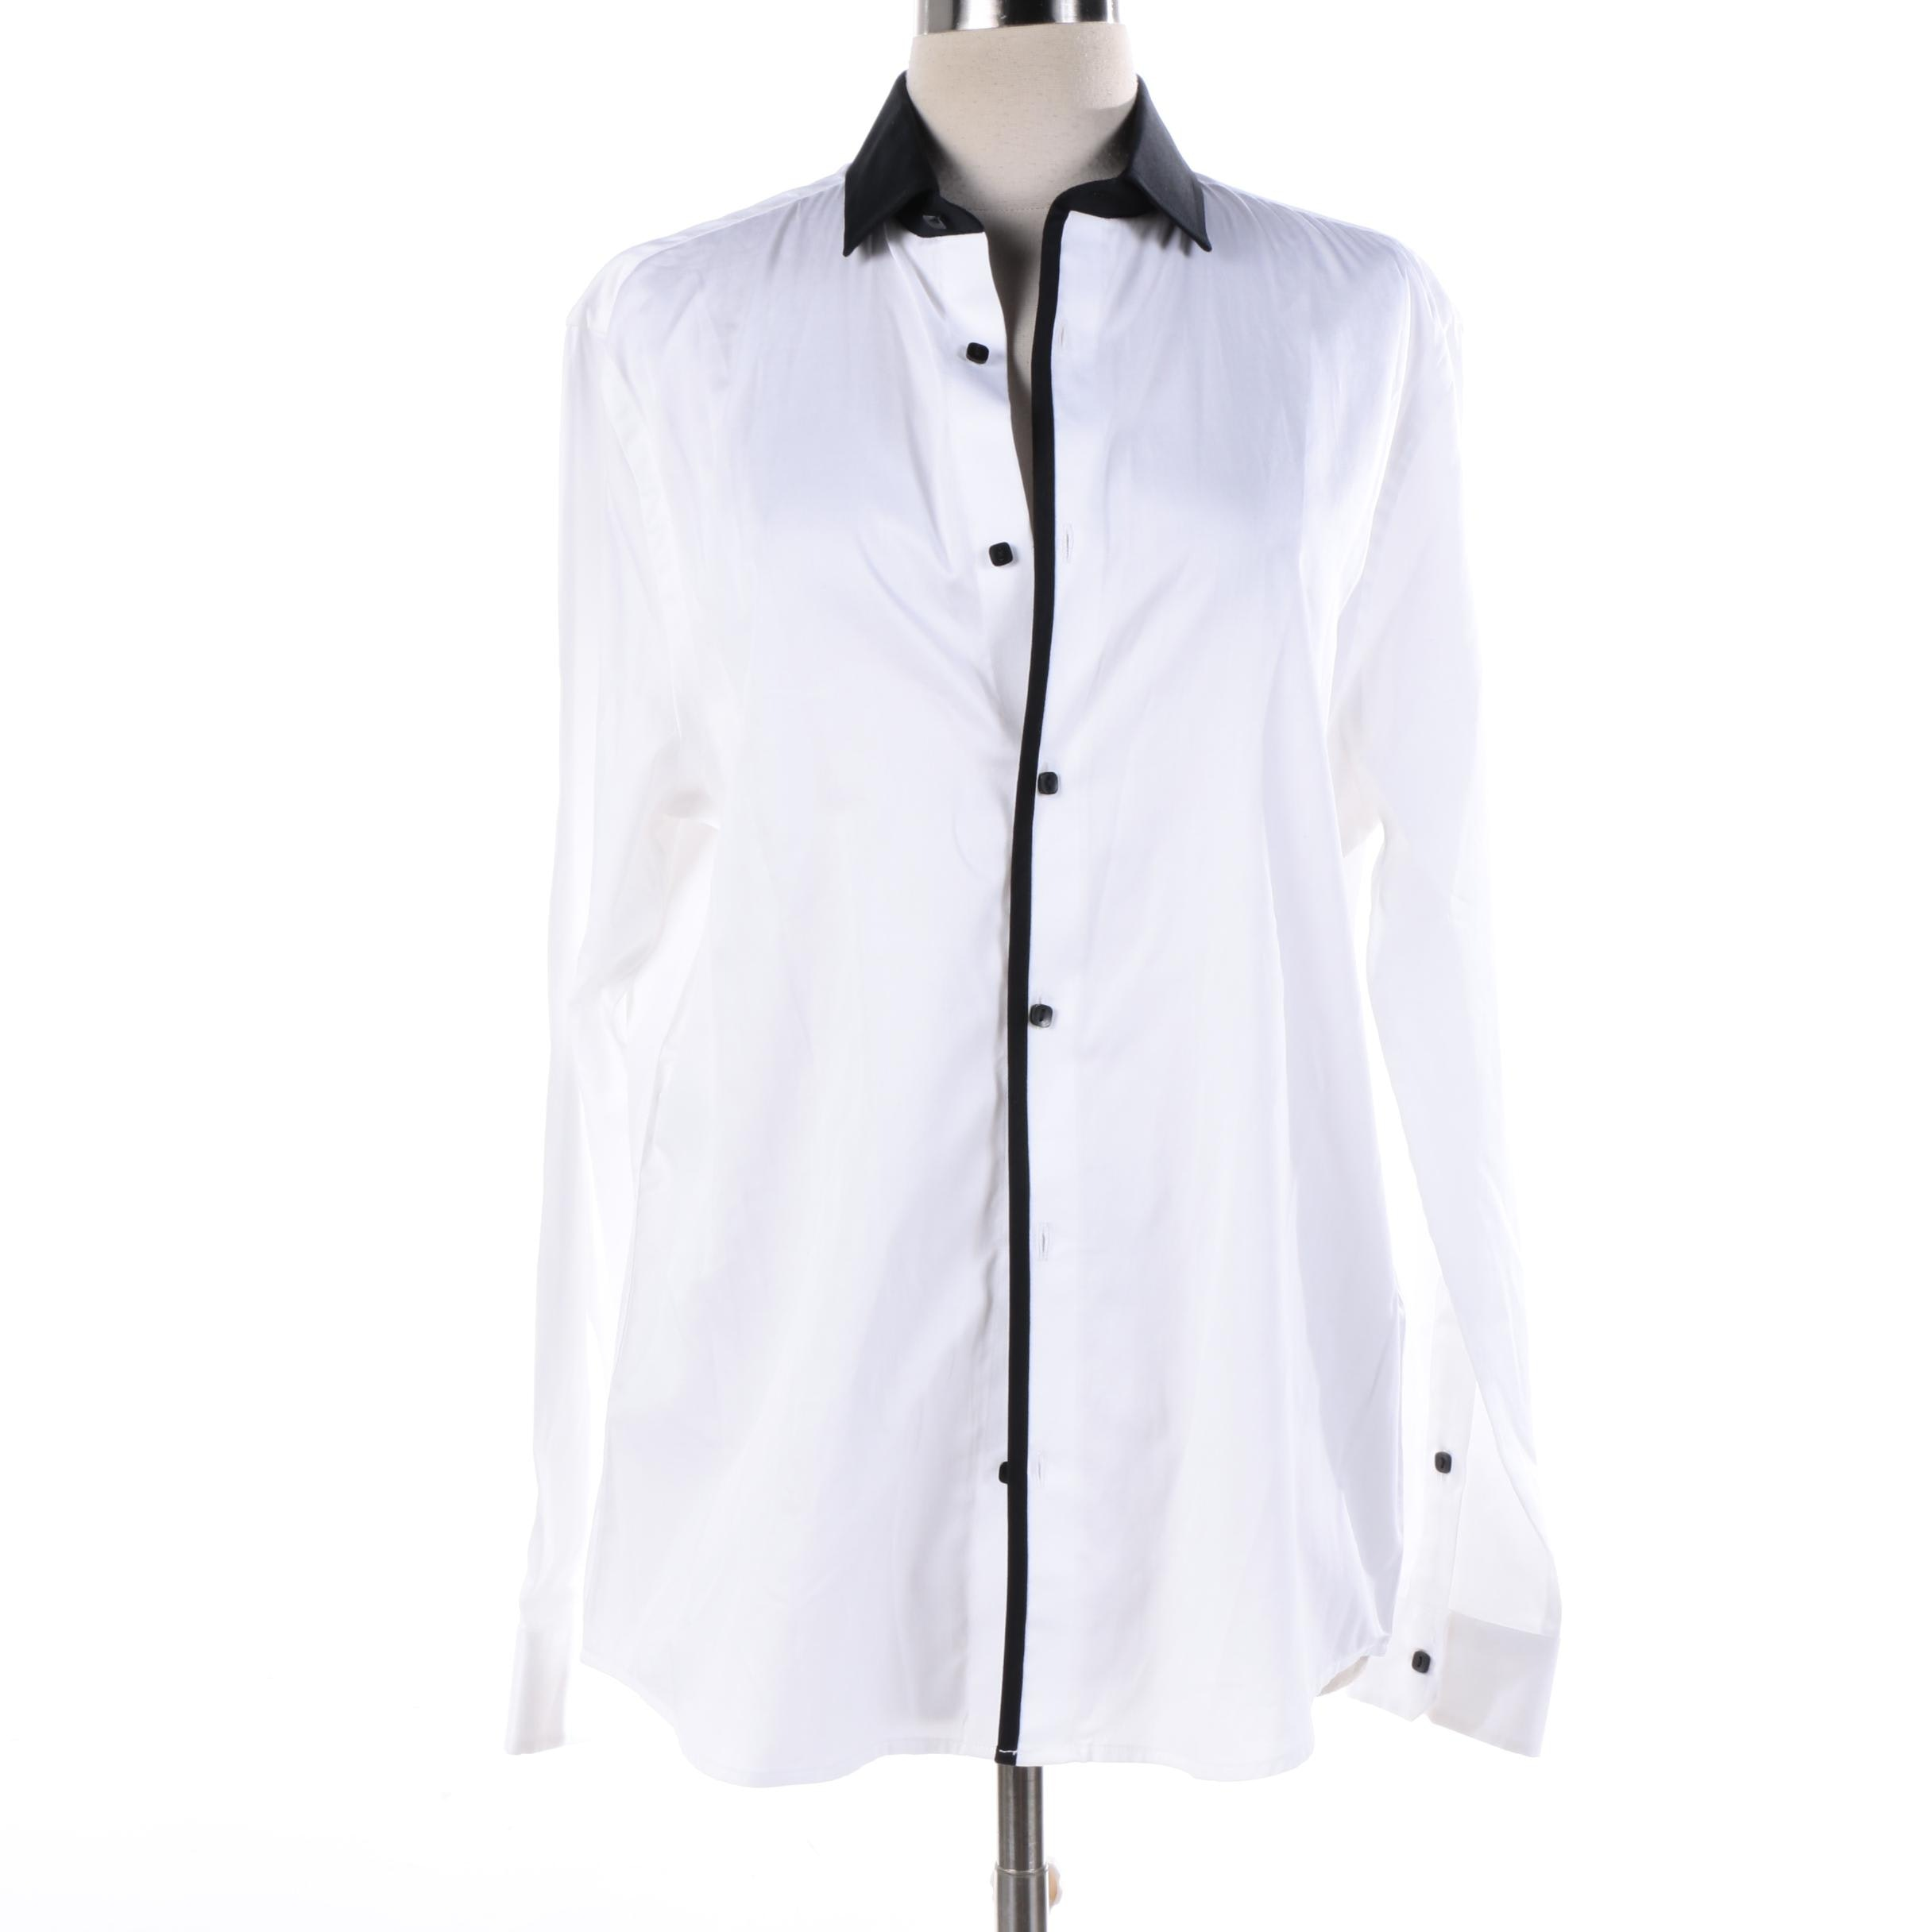 Women's Karl Lagerfeld White Dress Button-Front Shirt Trimmed in Black